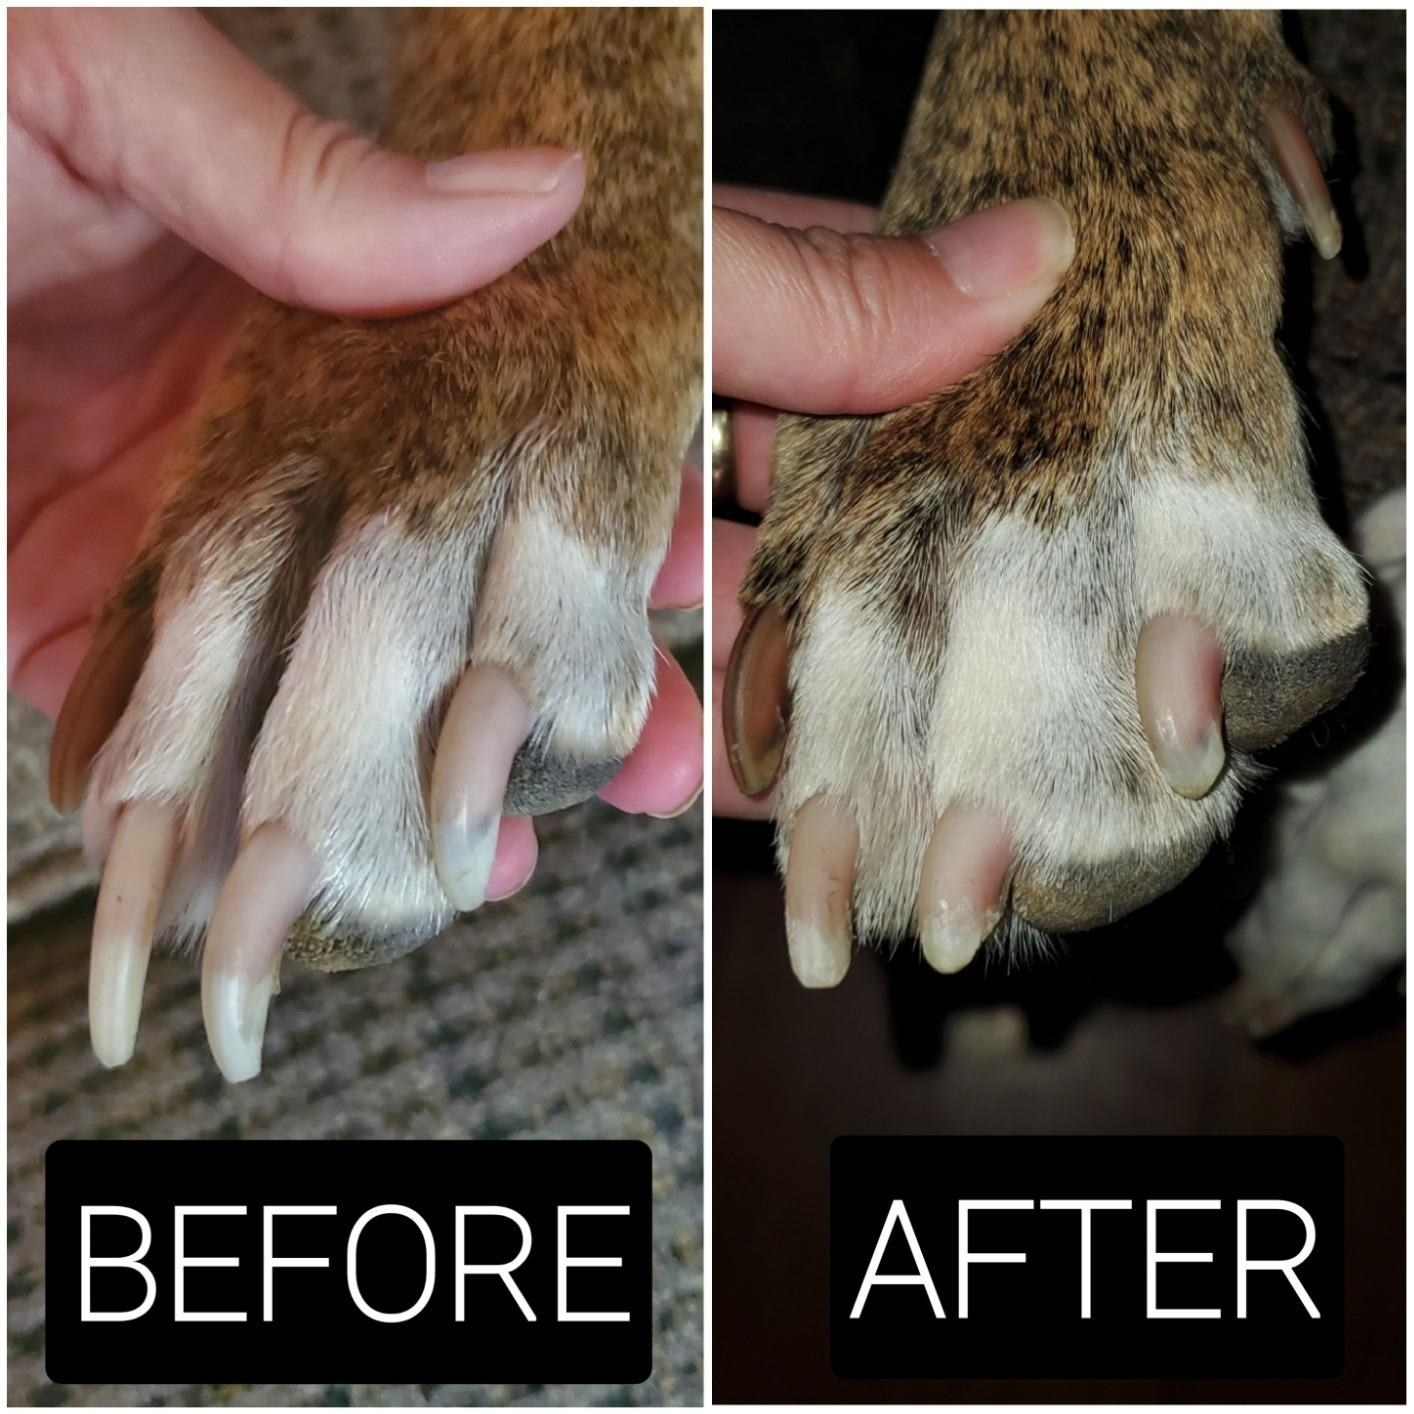 Before photo of a dog's overgrown nails and an after photo of the same dog with nails that are neatly trimmed